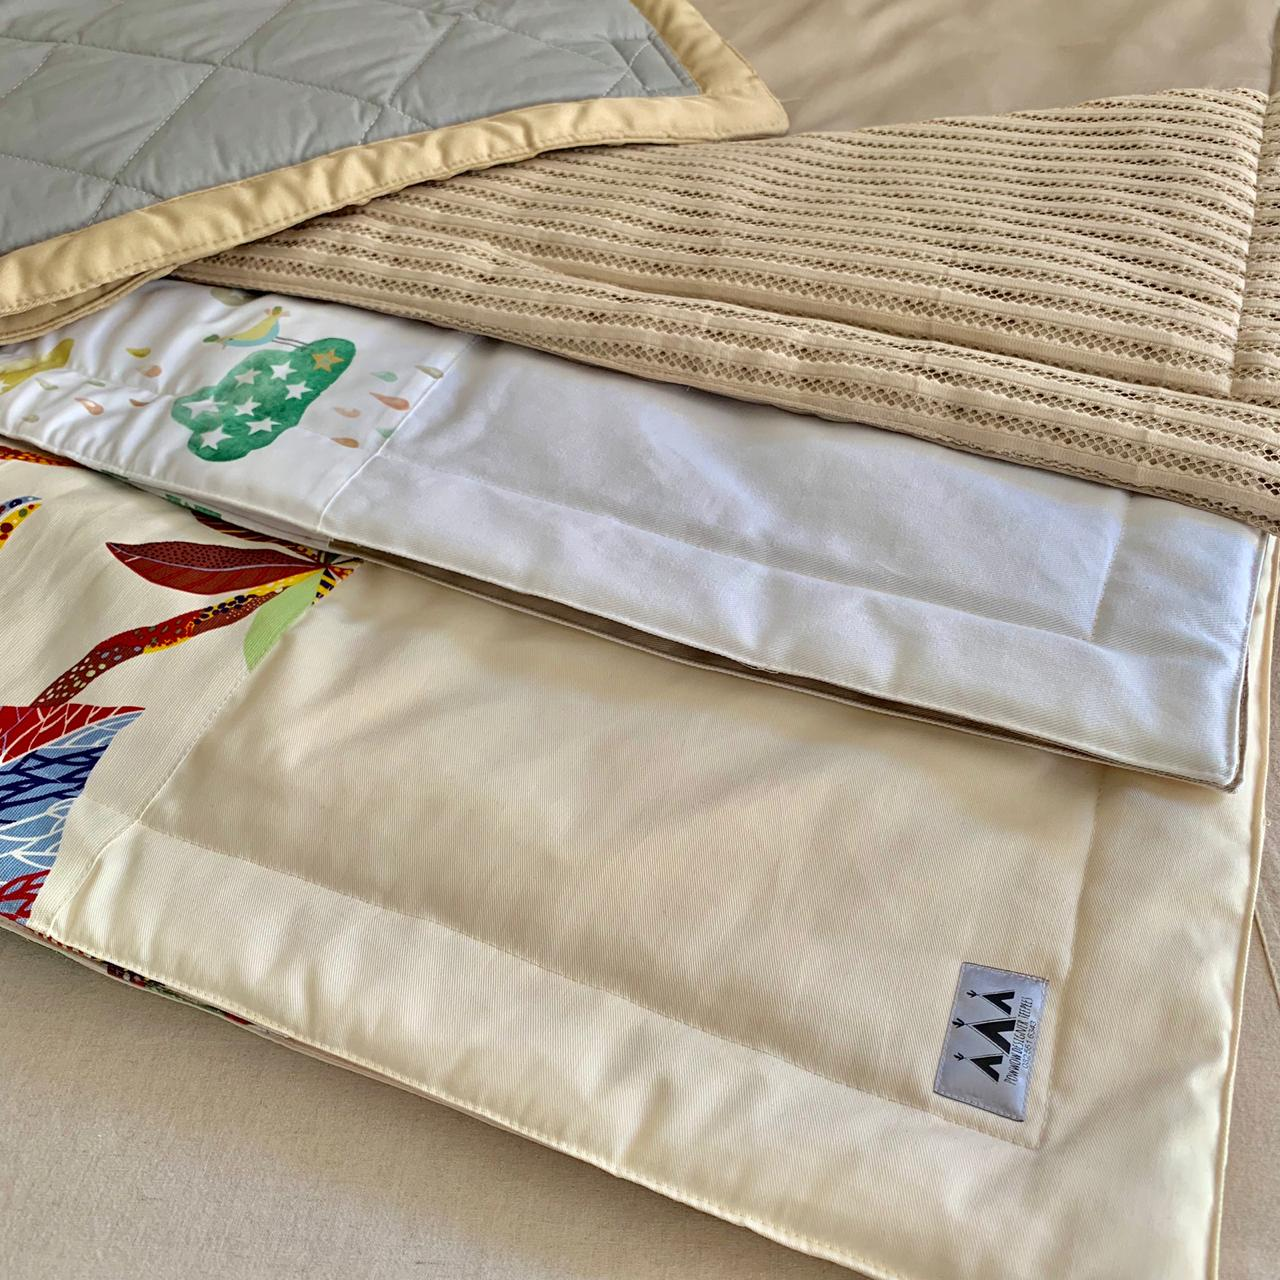 teepee quilts and floor mats for sale in Johannesburg